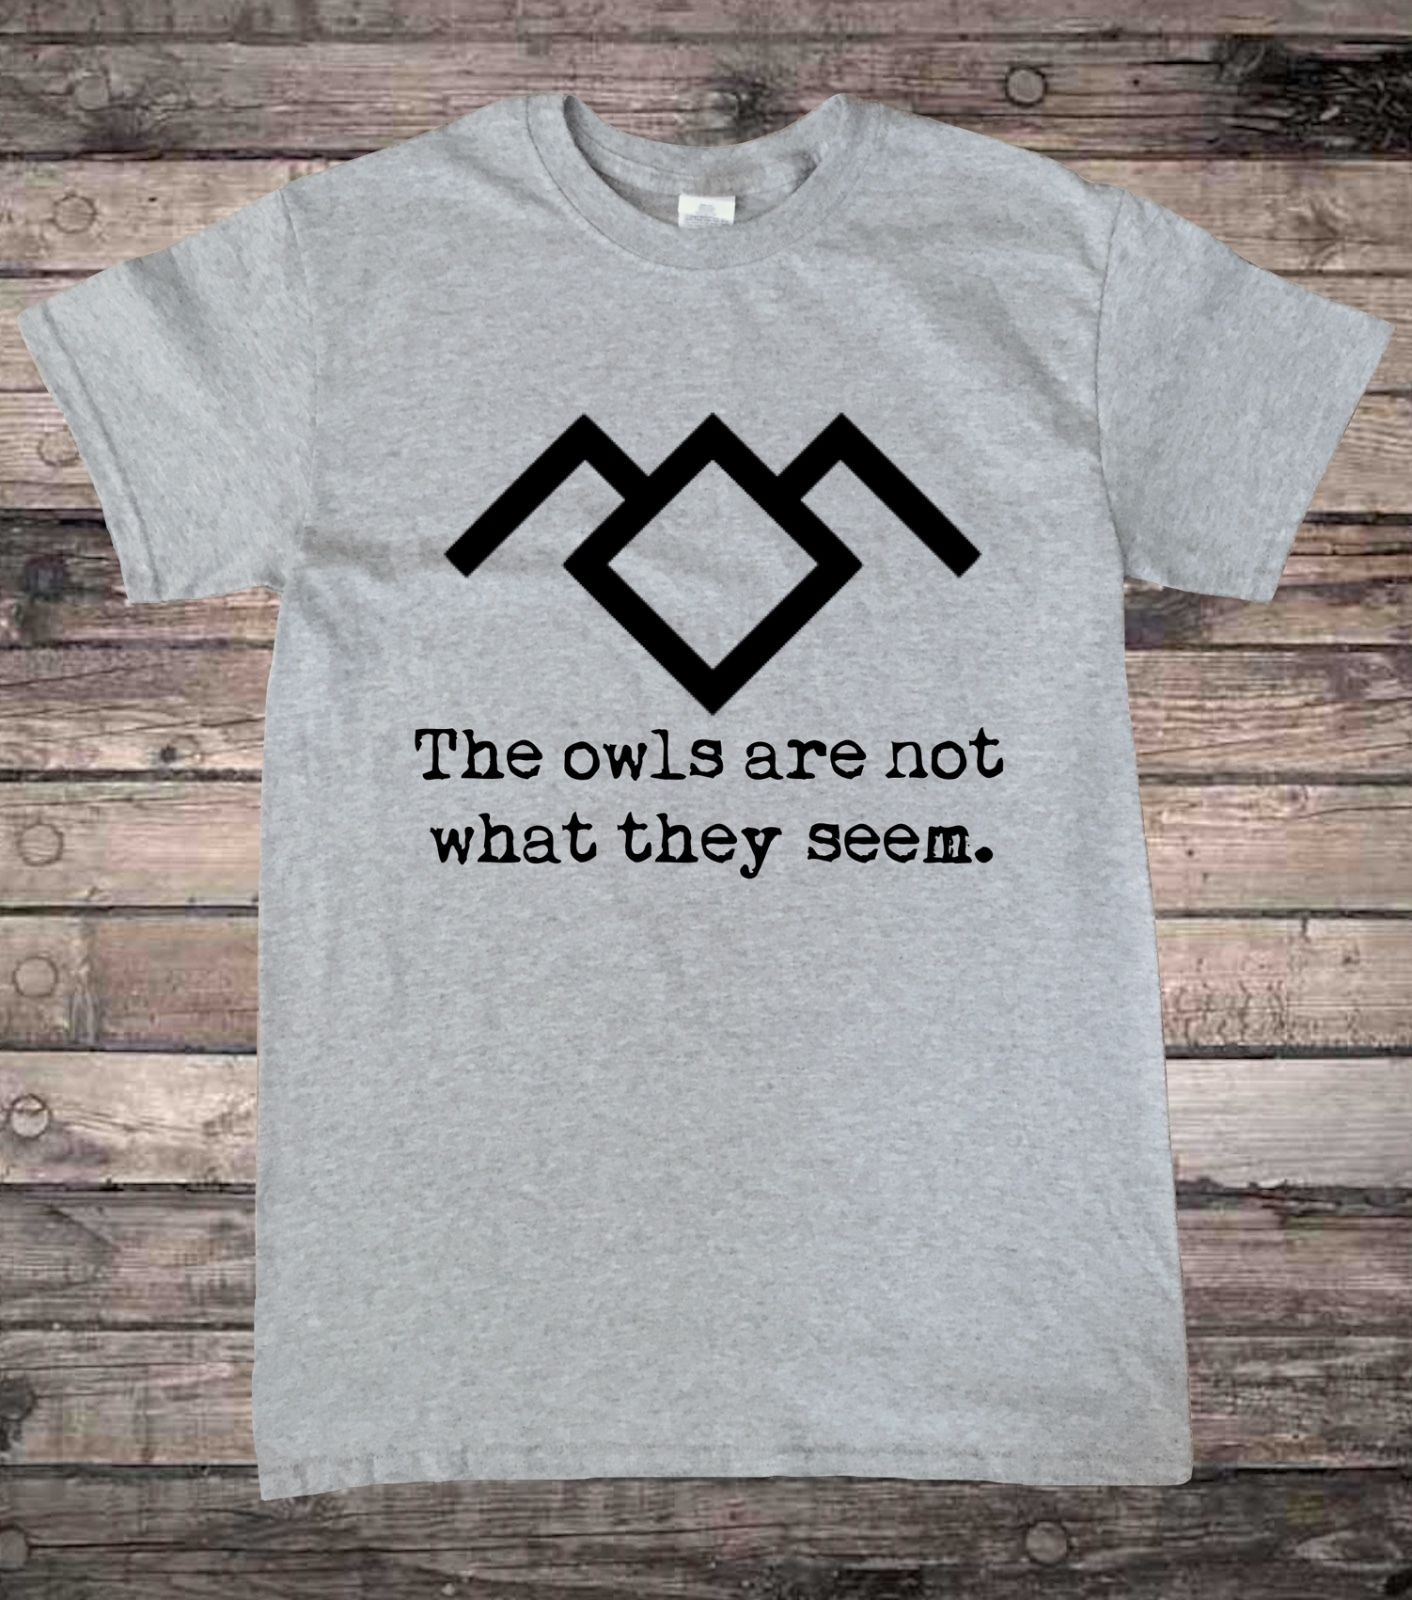 Black t shirts with quotes - Twin Peaks Black Lodge Owl Quote T Shirt Short Sleeve T Shirt Men T Shirt Male Hipster Tops Sleeves Boy Cotton Men T Shirt